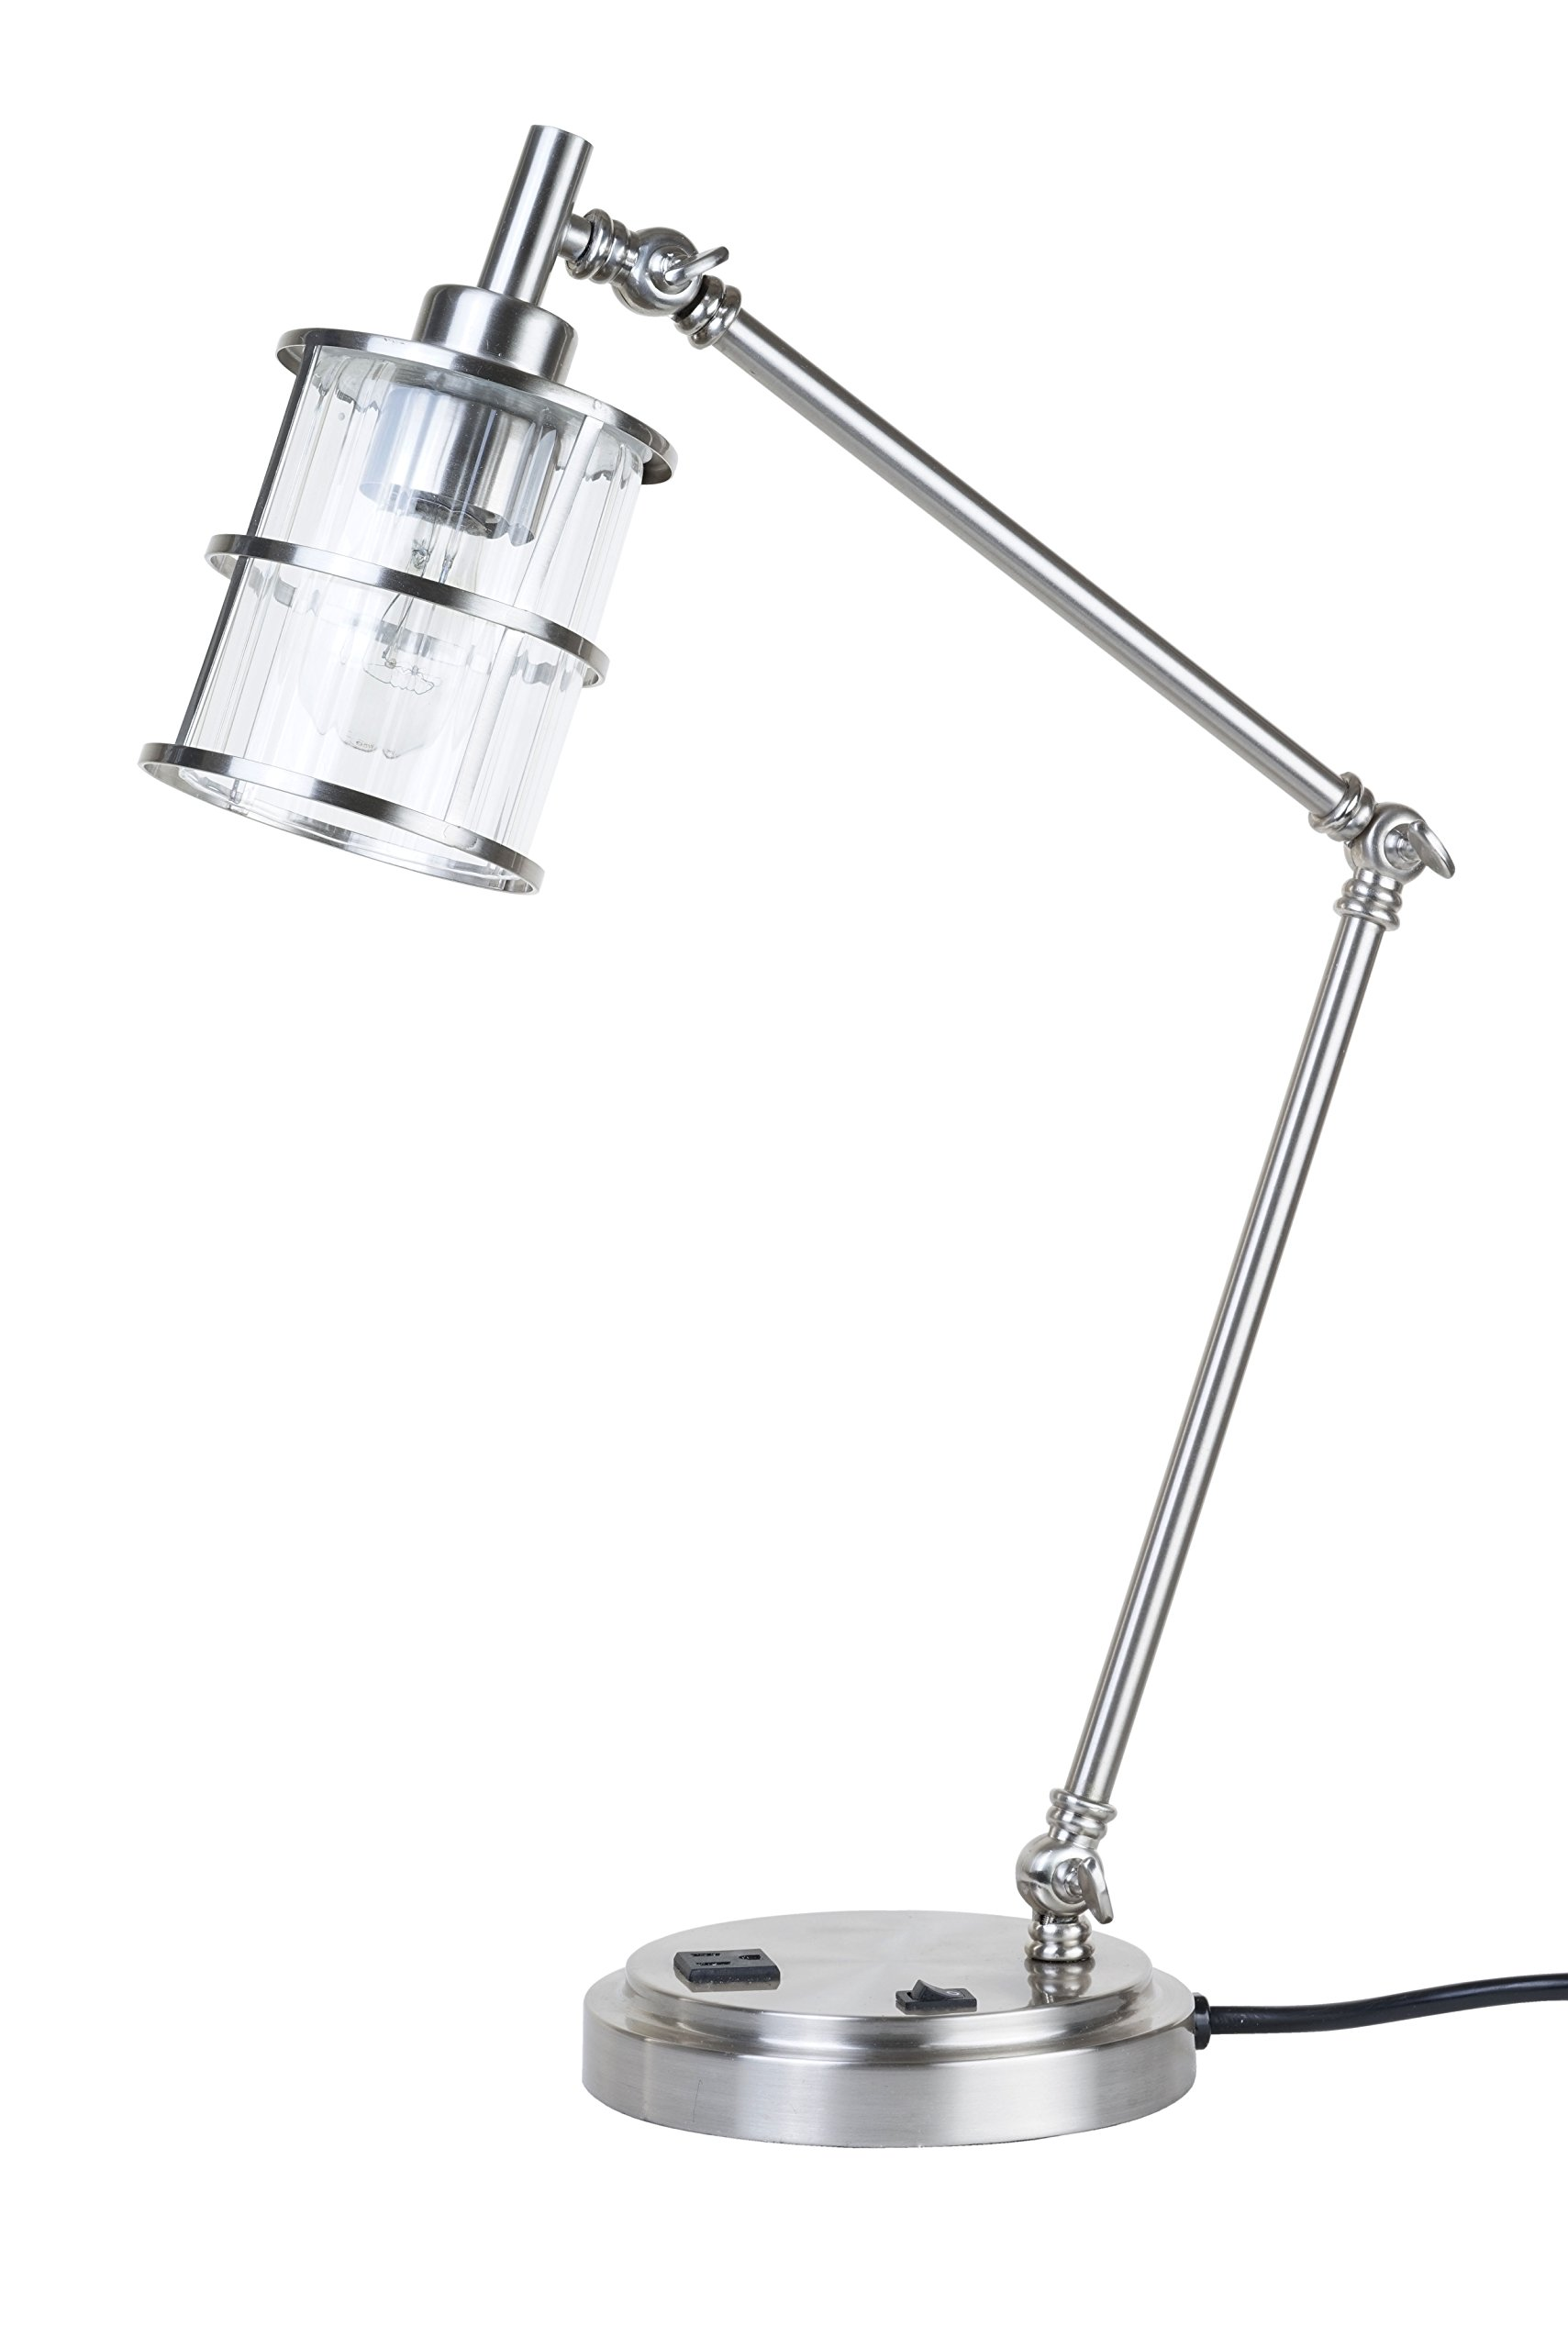 Catalina Lighting 23'' Leon Silver Ribbed Glass Desk Lamp with Outlet on Base, 20441-000 by Catalina Lighting